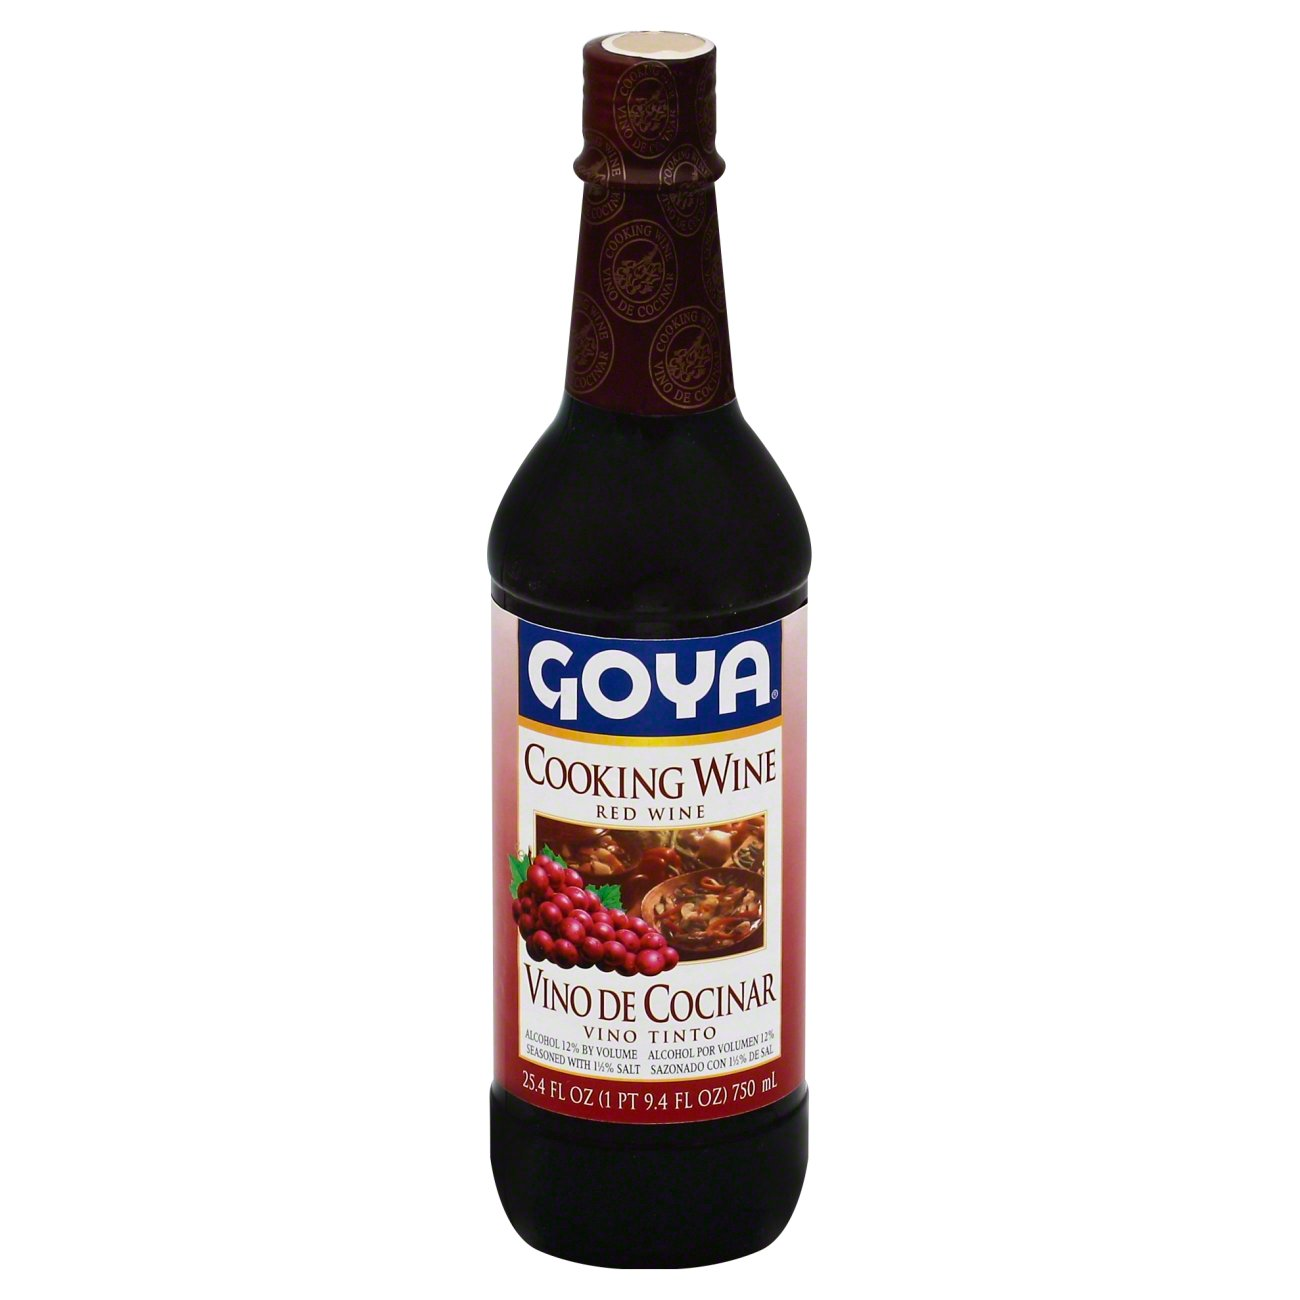 Goya Red Cooking Wine - Shop Vinegar & Cooking Wine at H-E-B